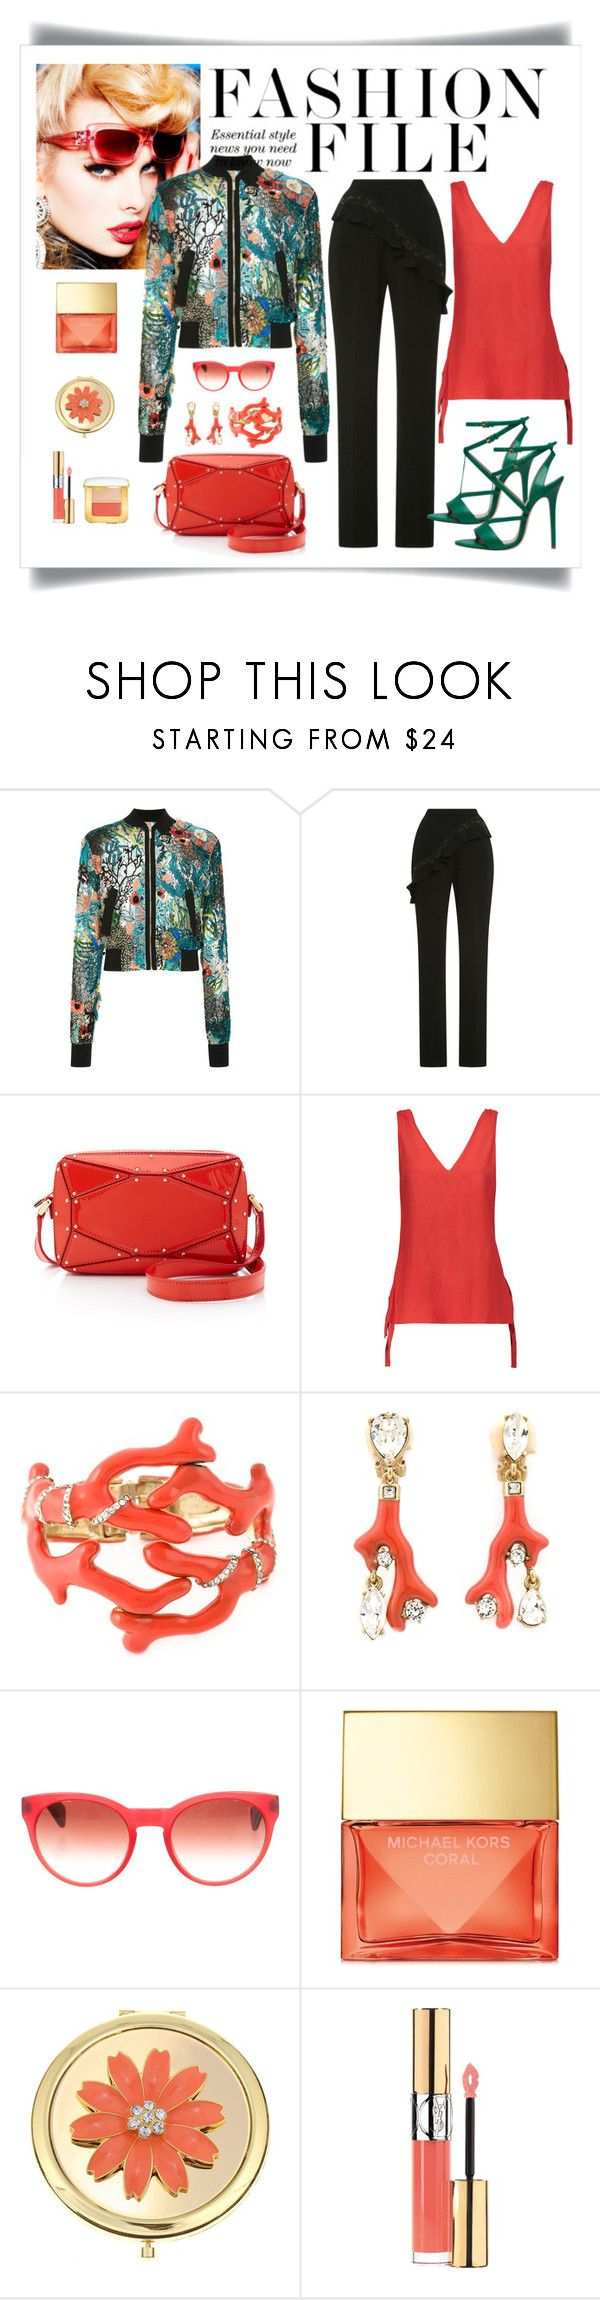 """Elie Saab Bead Embroidered Bomber Jacket Look"" by romaboots-1 ❤ liked on Polyvore featuring Bebe, Elie Saab, 10 Crosby Derek Lam, Oscar de la Renta, Oliver Peoples, Michael Kors, Liz Claiborne, Yves Saint Laurent and Tom Ford"